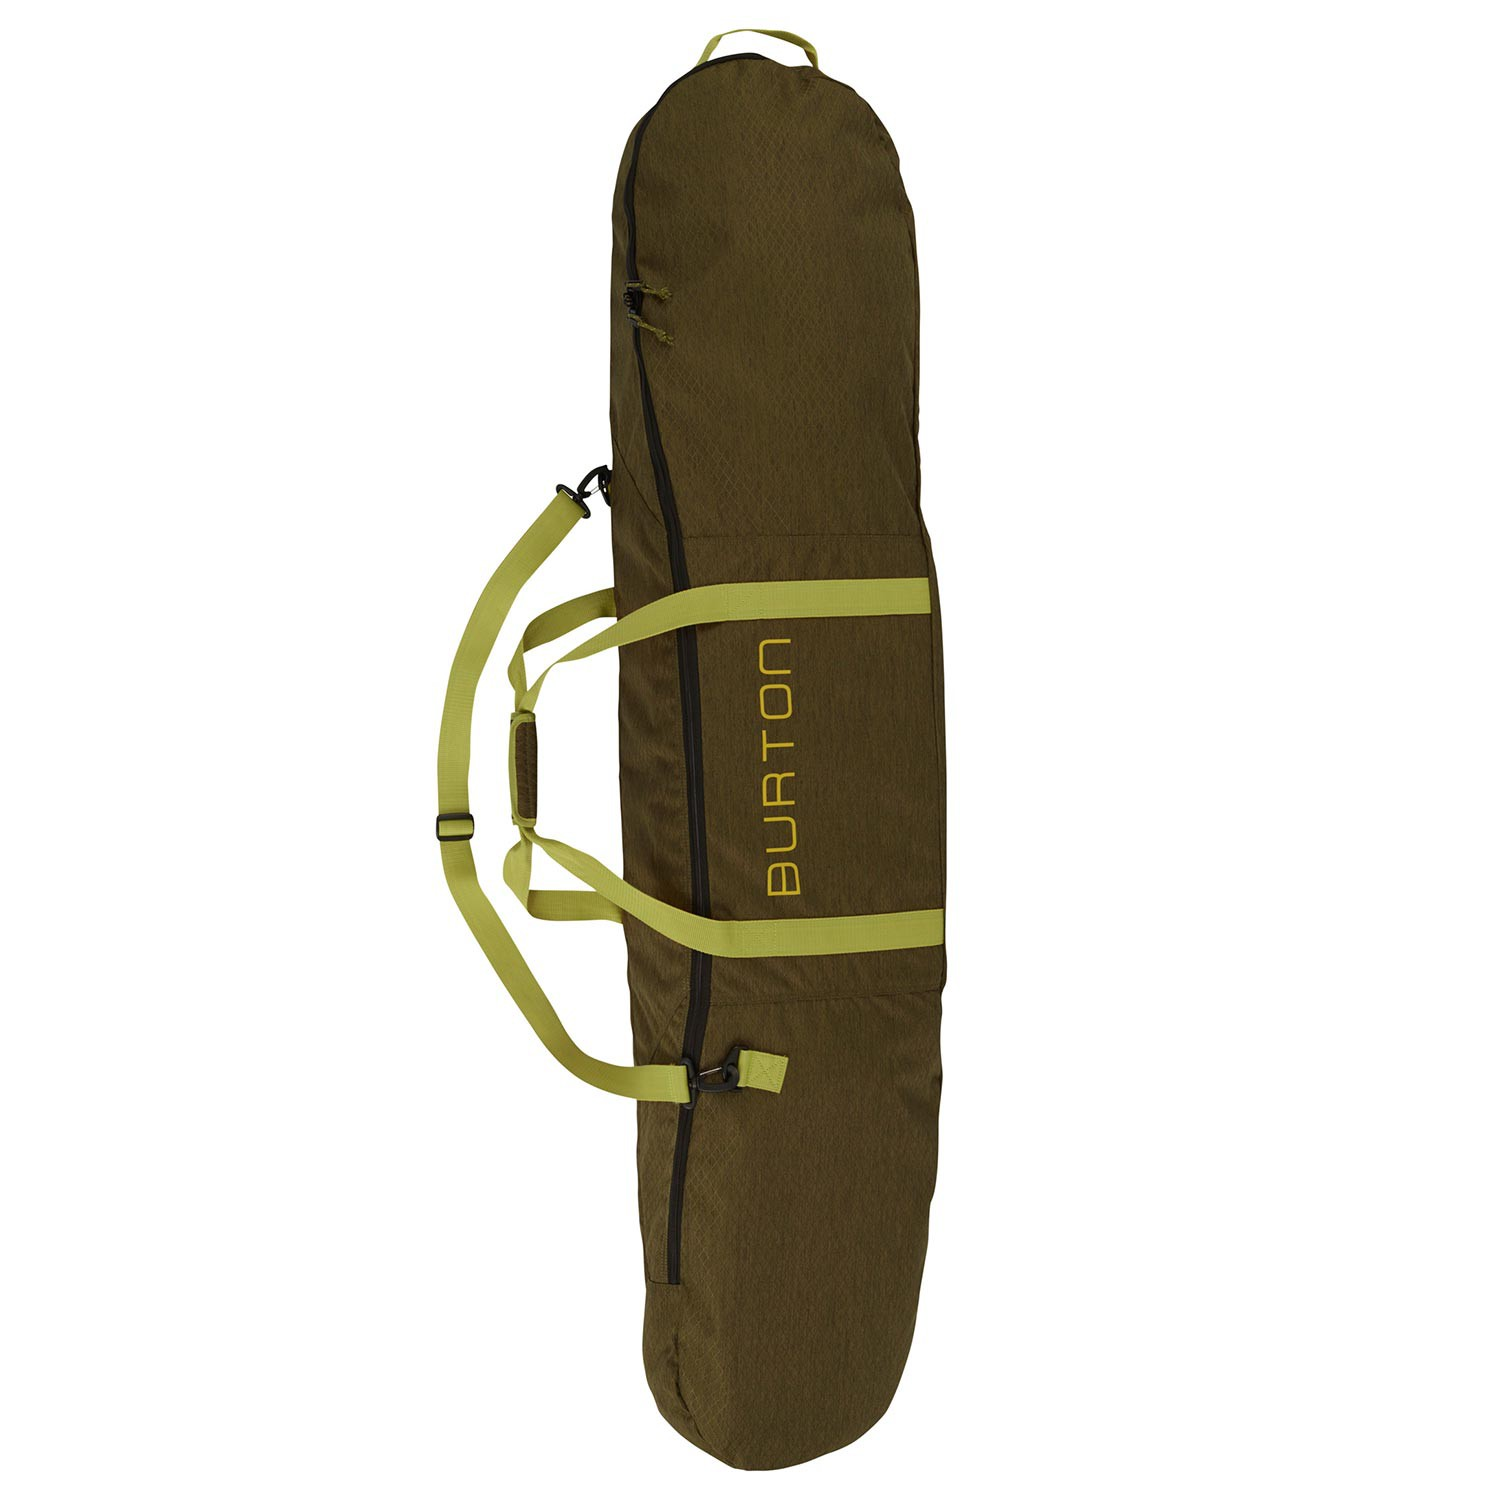 Obal na snowboard Burton Space Sack jungle